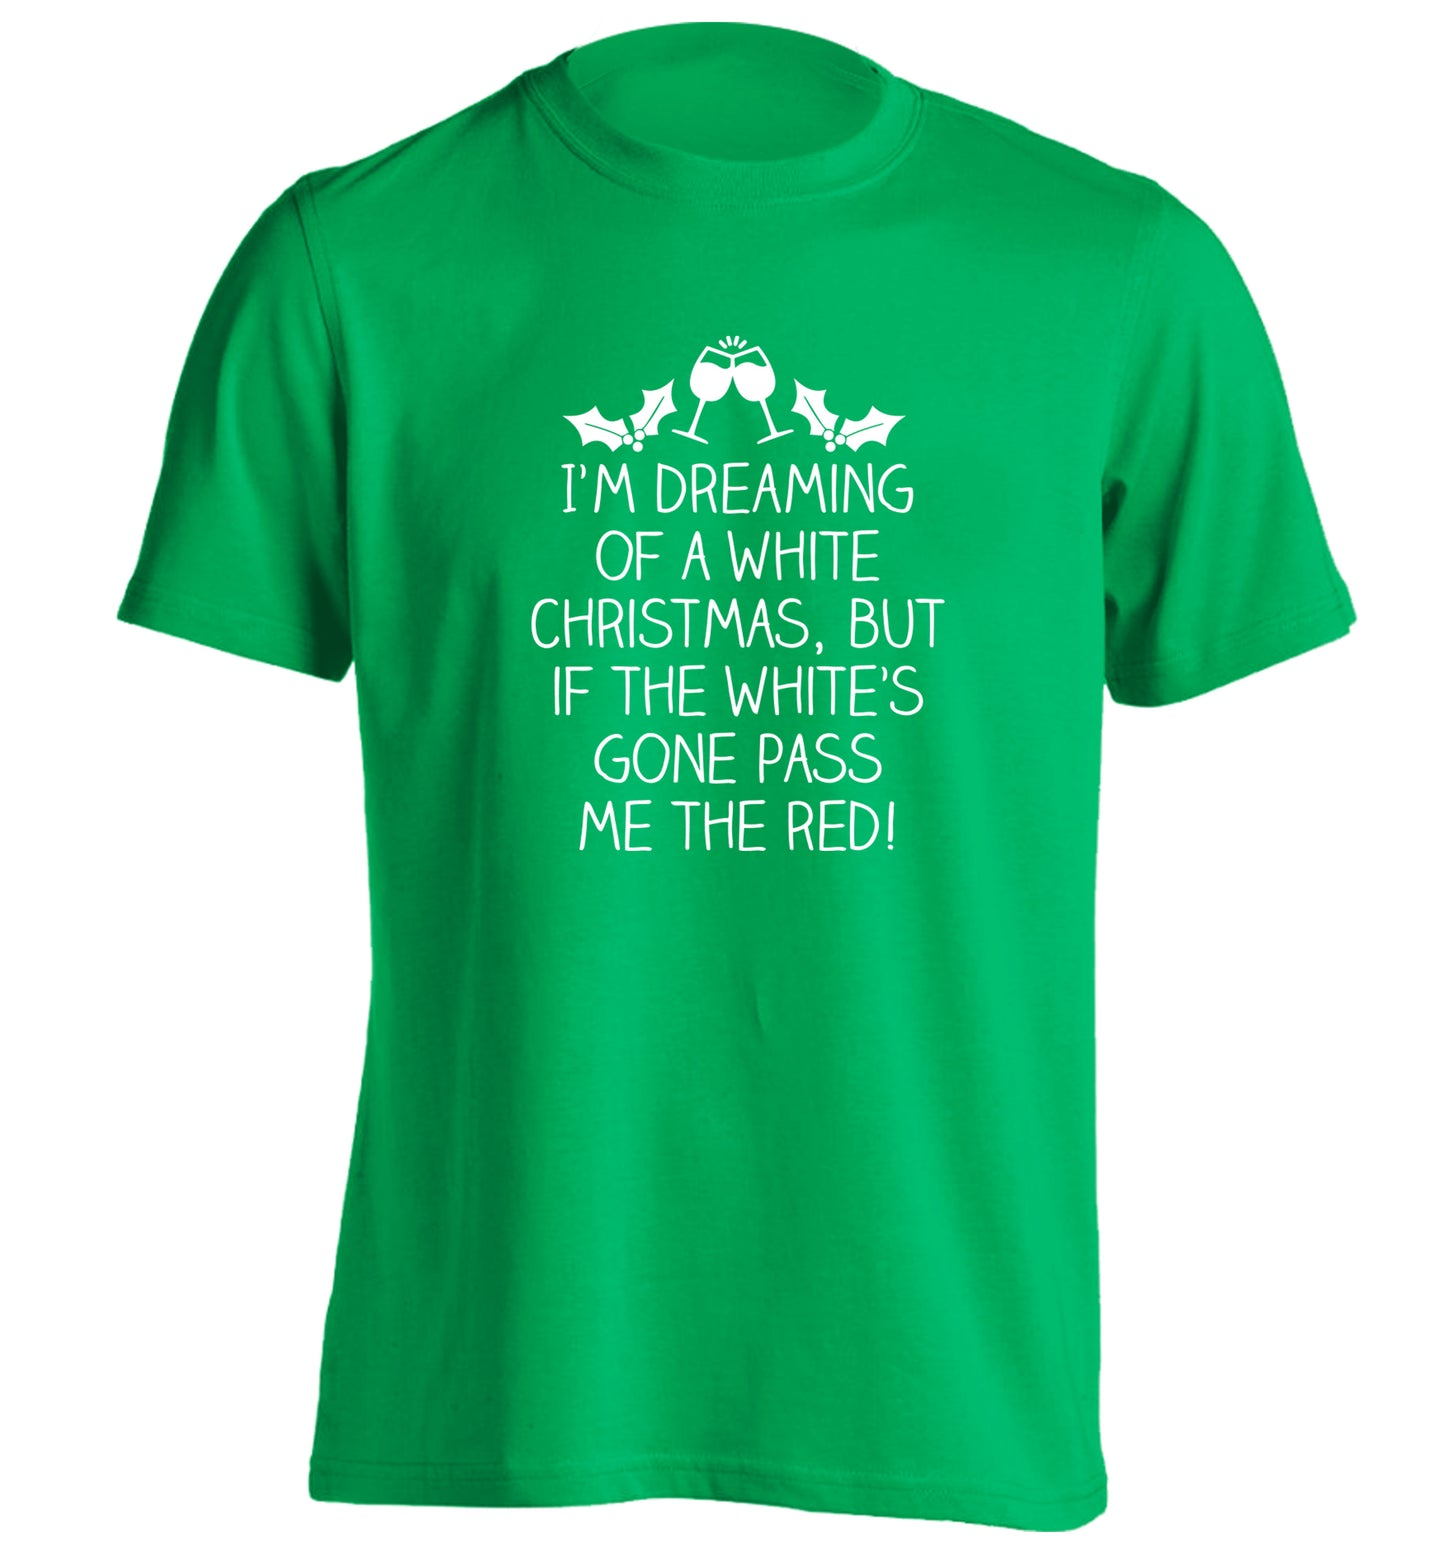 I'm dreaming of a white christmas, but if the white's gone pass me the red! adults unisex green Tshirt 2XL